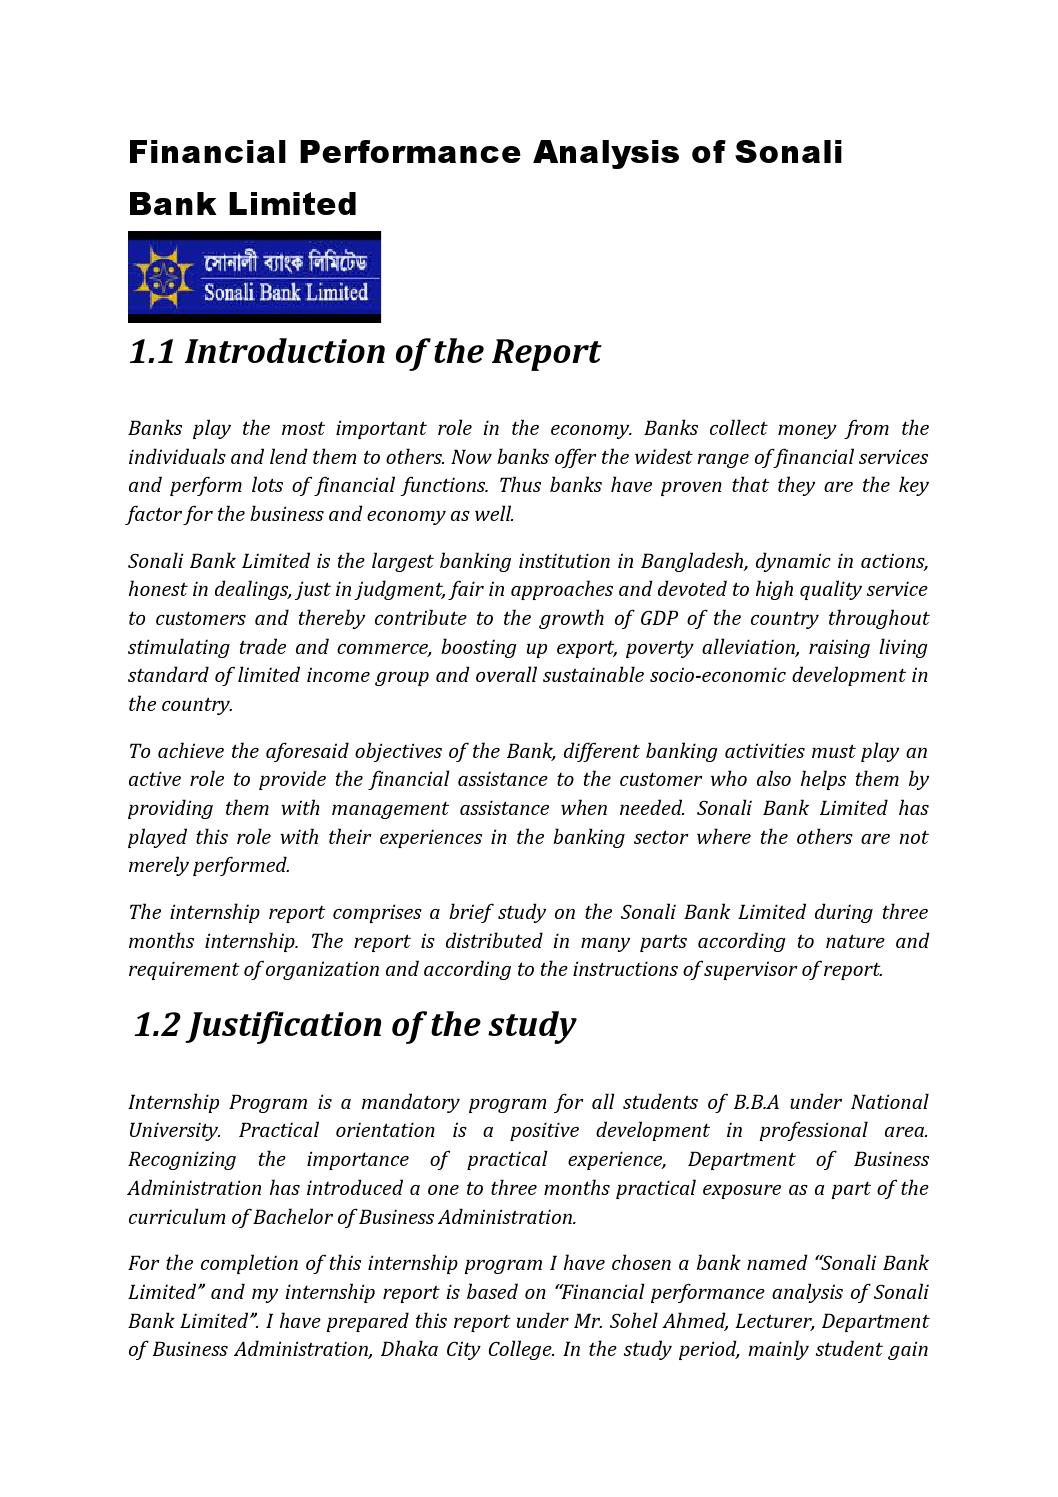 report on overall financial performance analysis